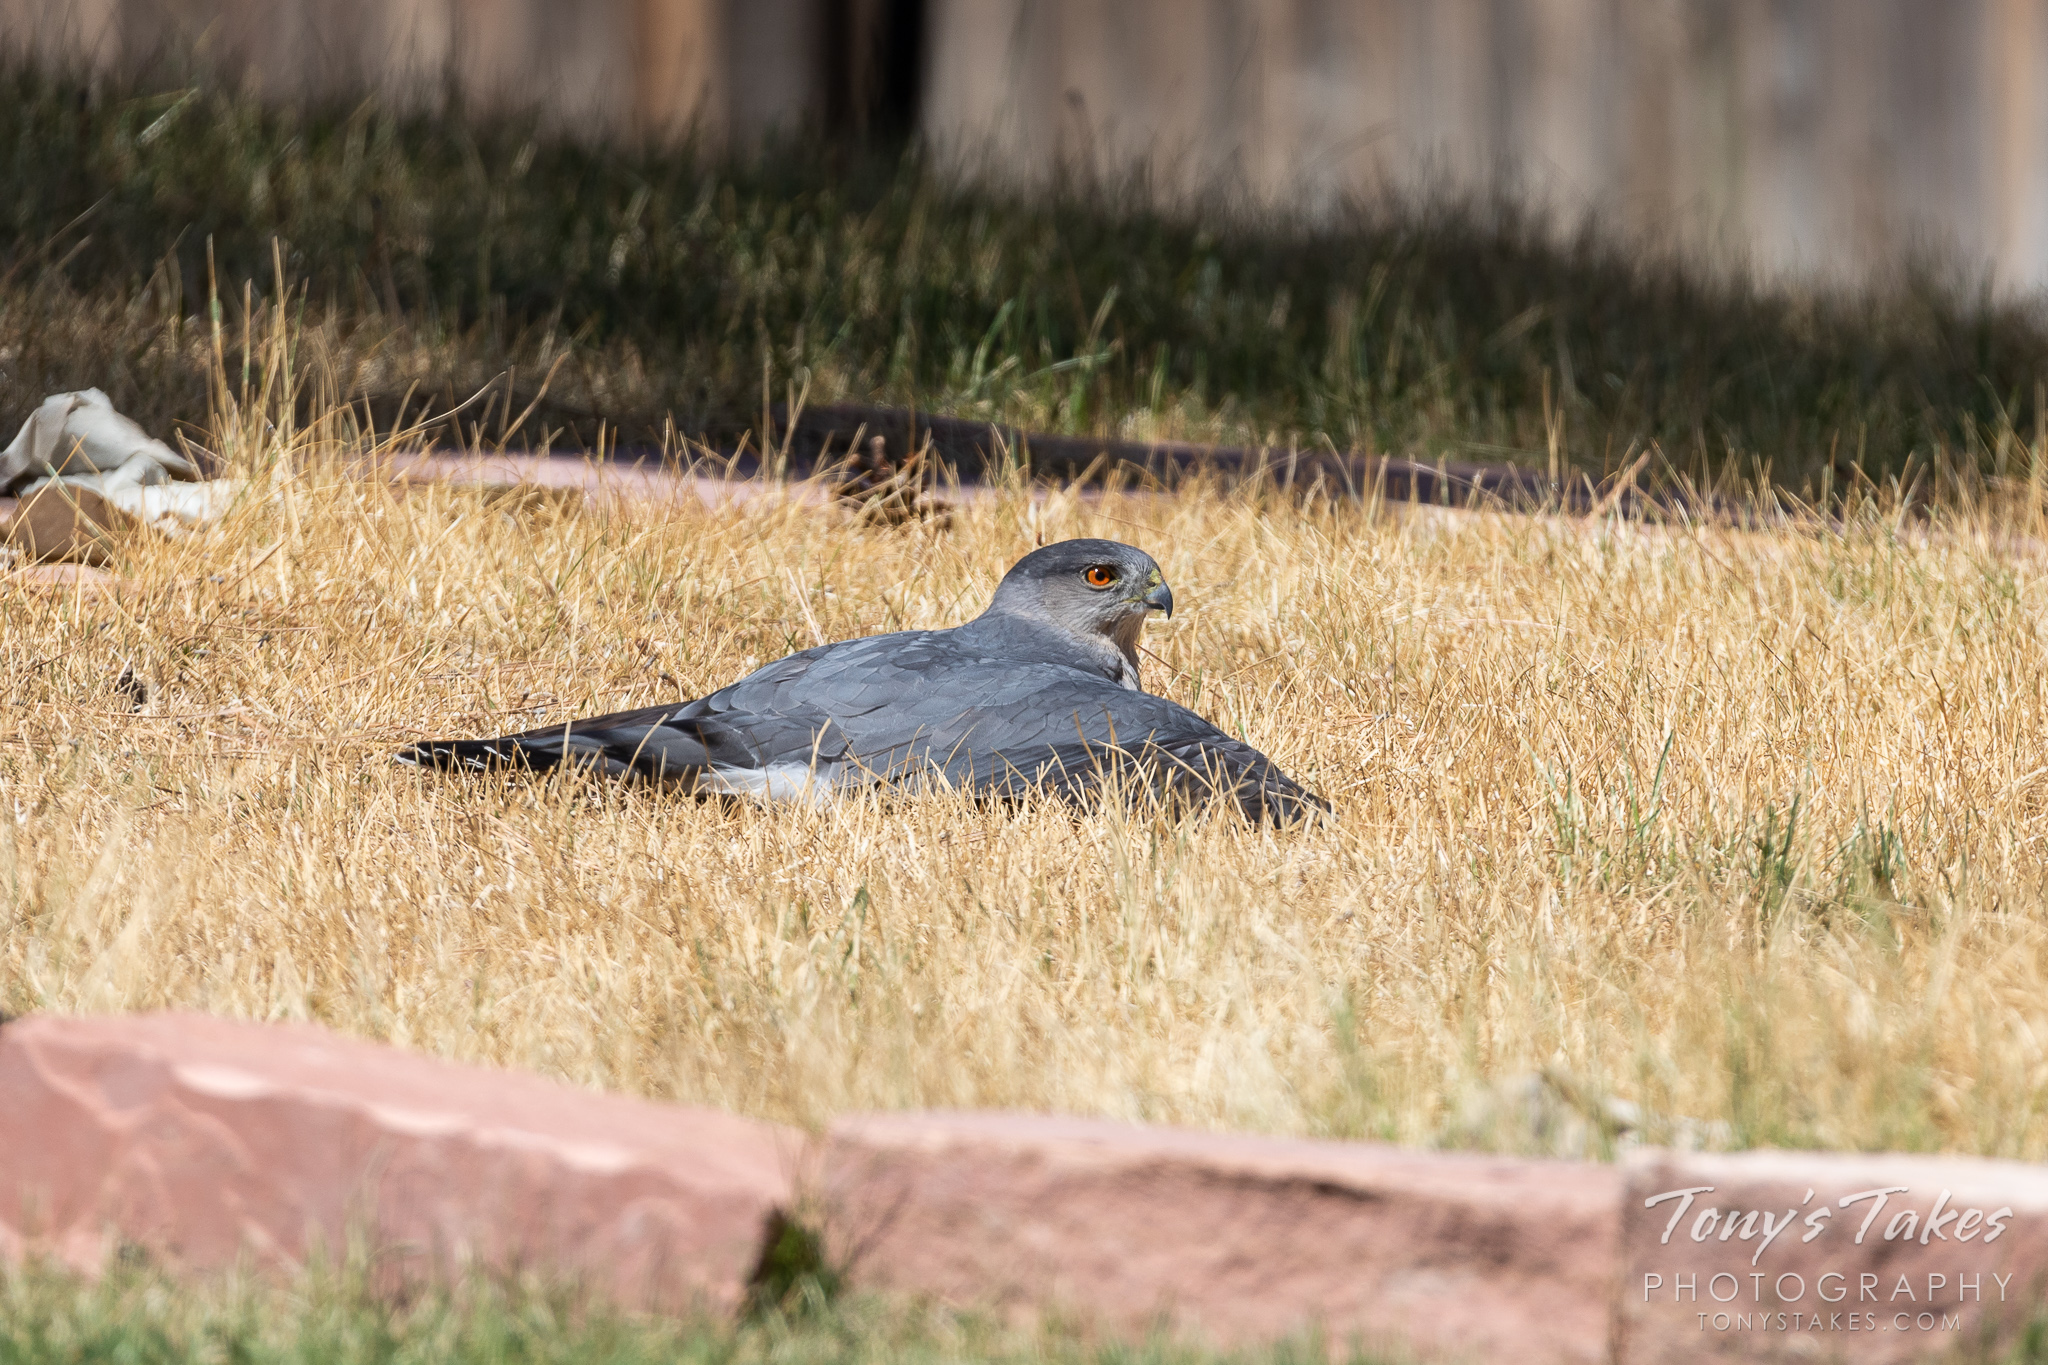 A Cooper's hawk stakes out a spot in a suburban backyard in Thornton, Colorado. (© Tony's Takes)